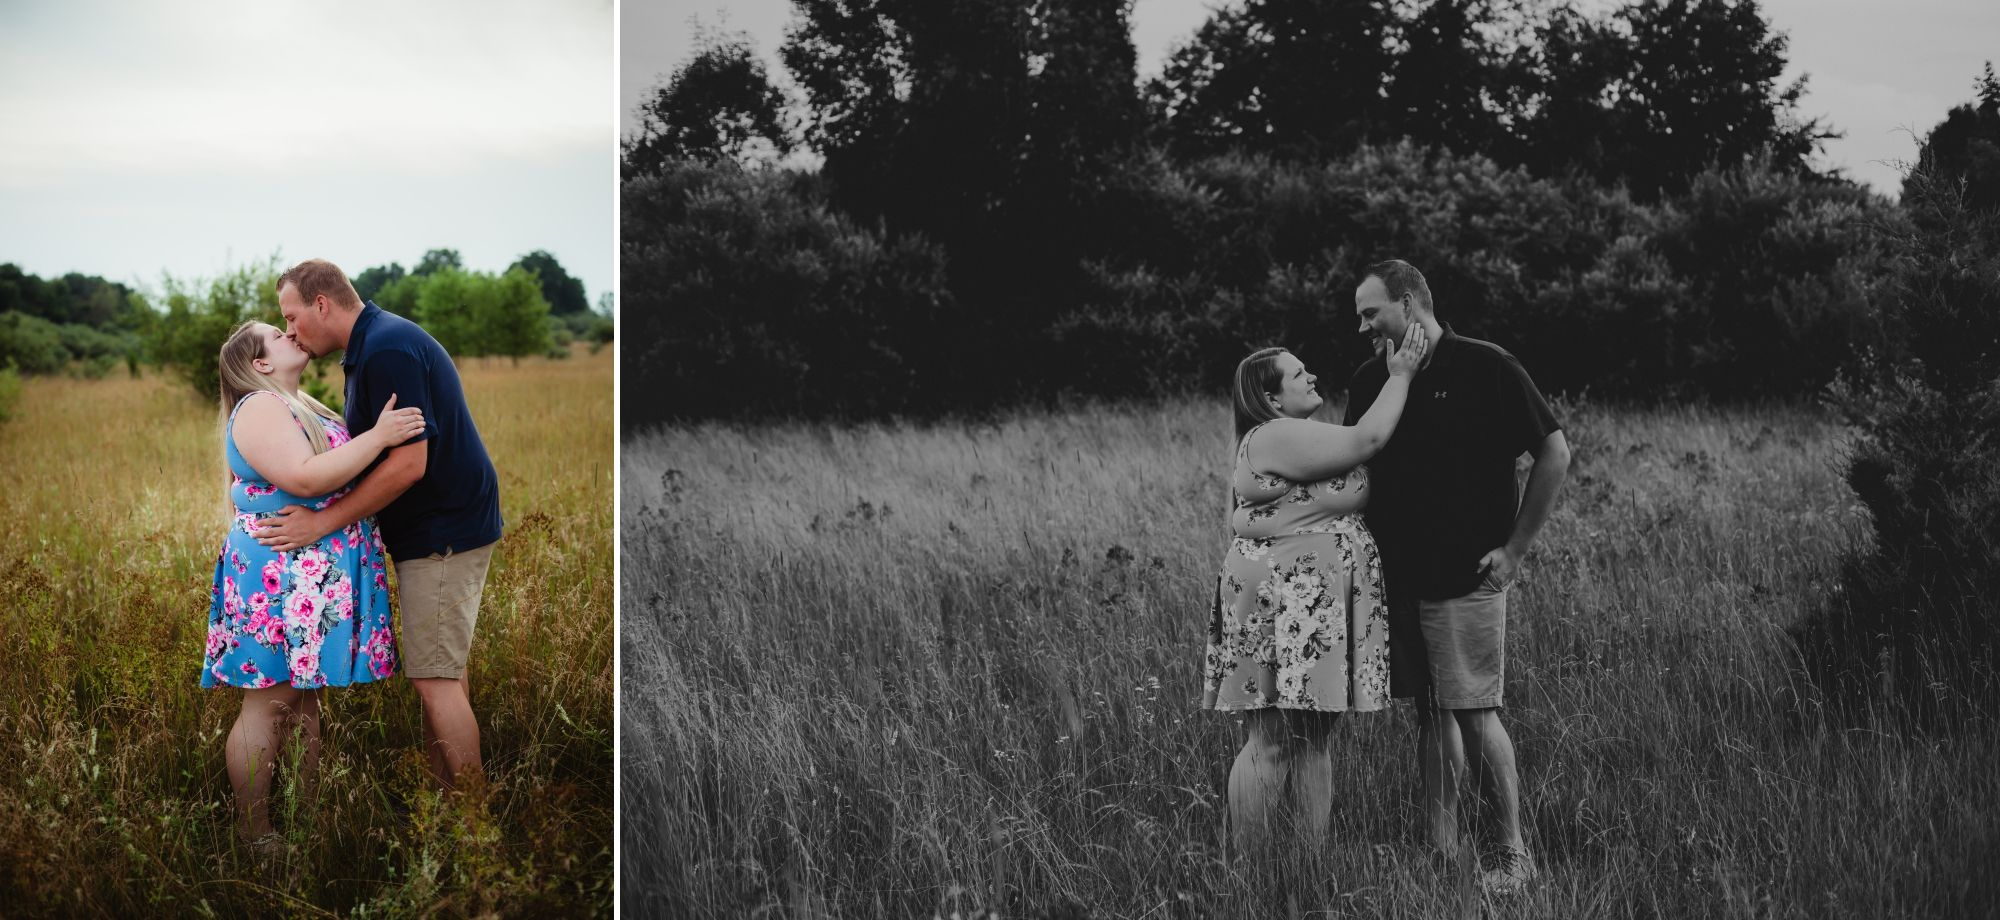 Photos of an engaged couple standing in a field kissing then the woman touching the man's face.